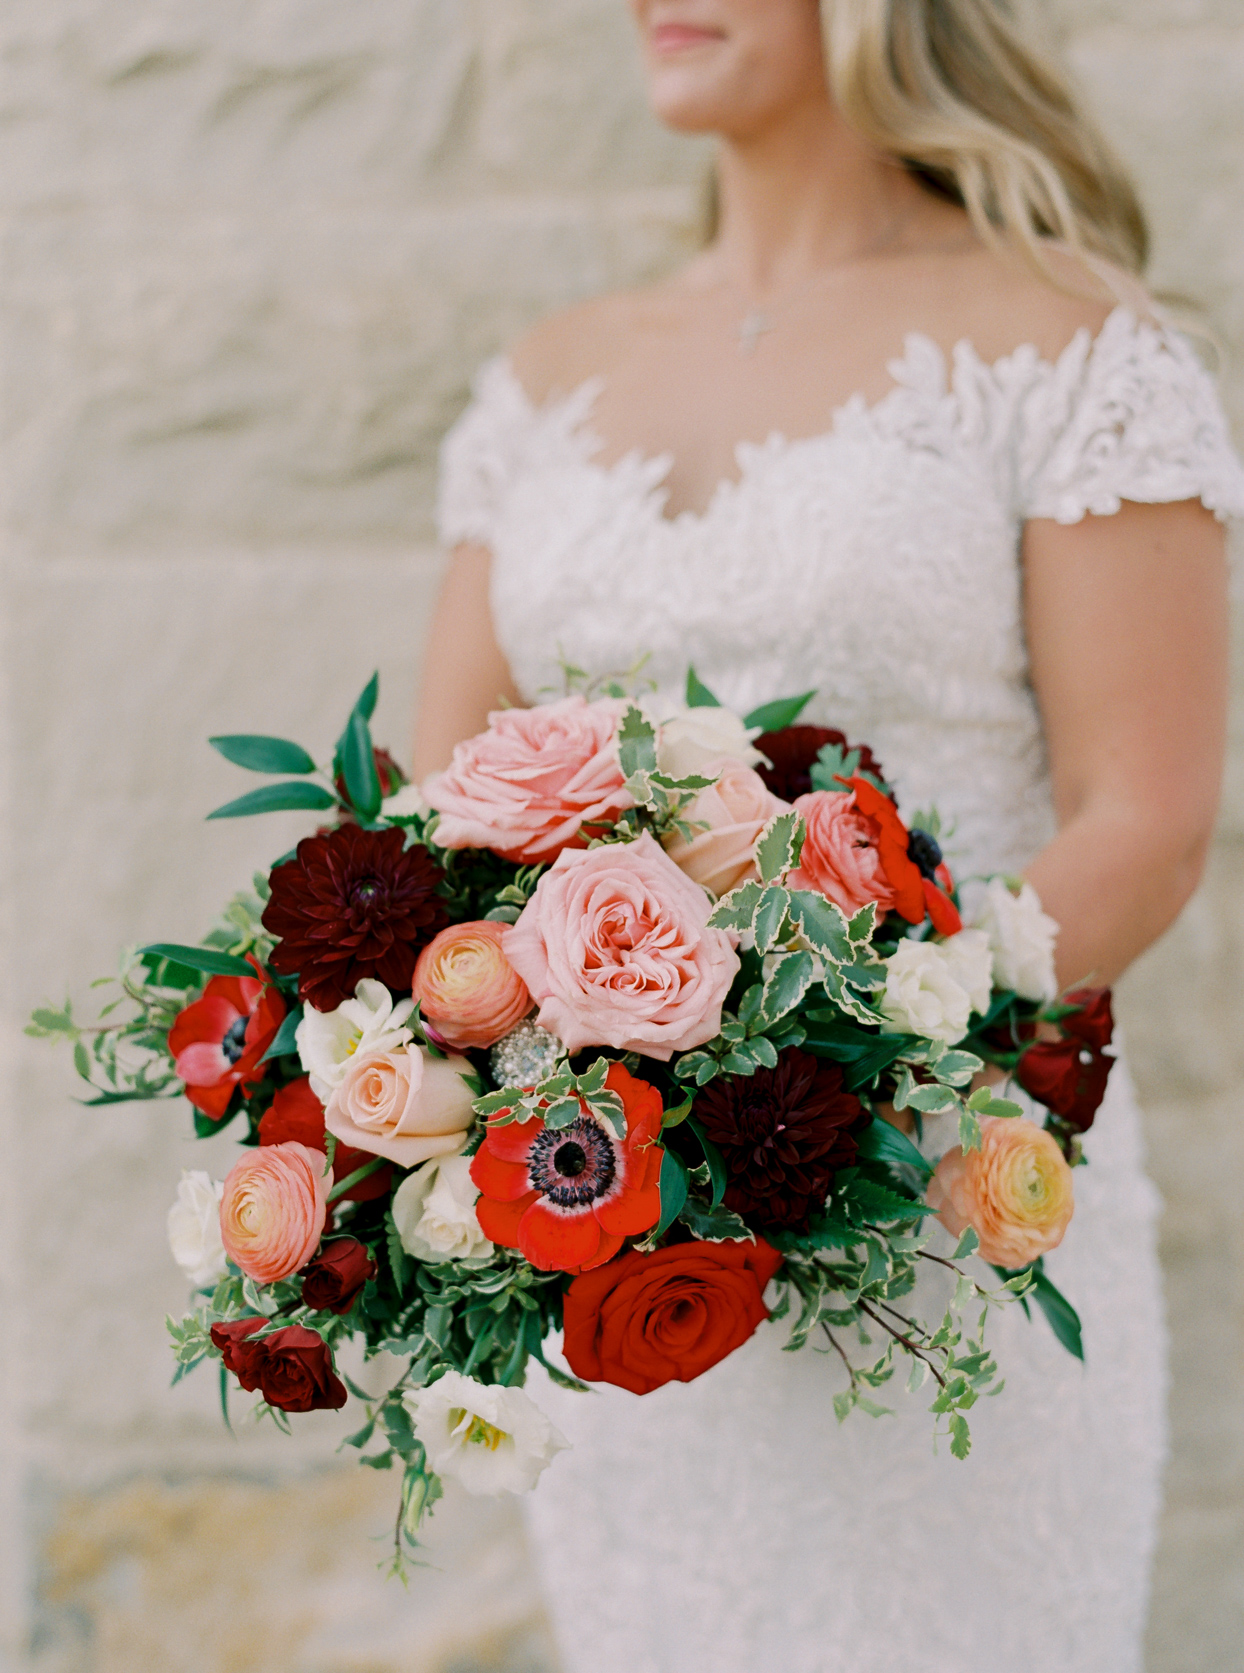 wedding bouquet of red and white flowers